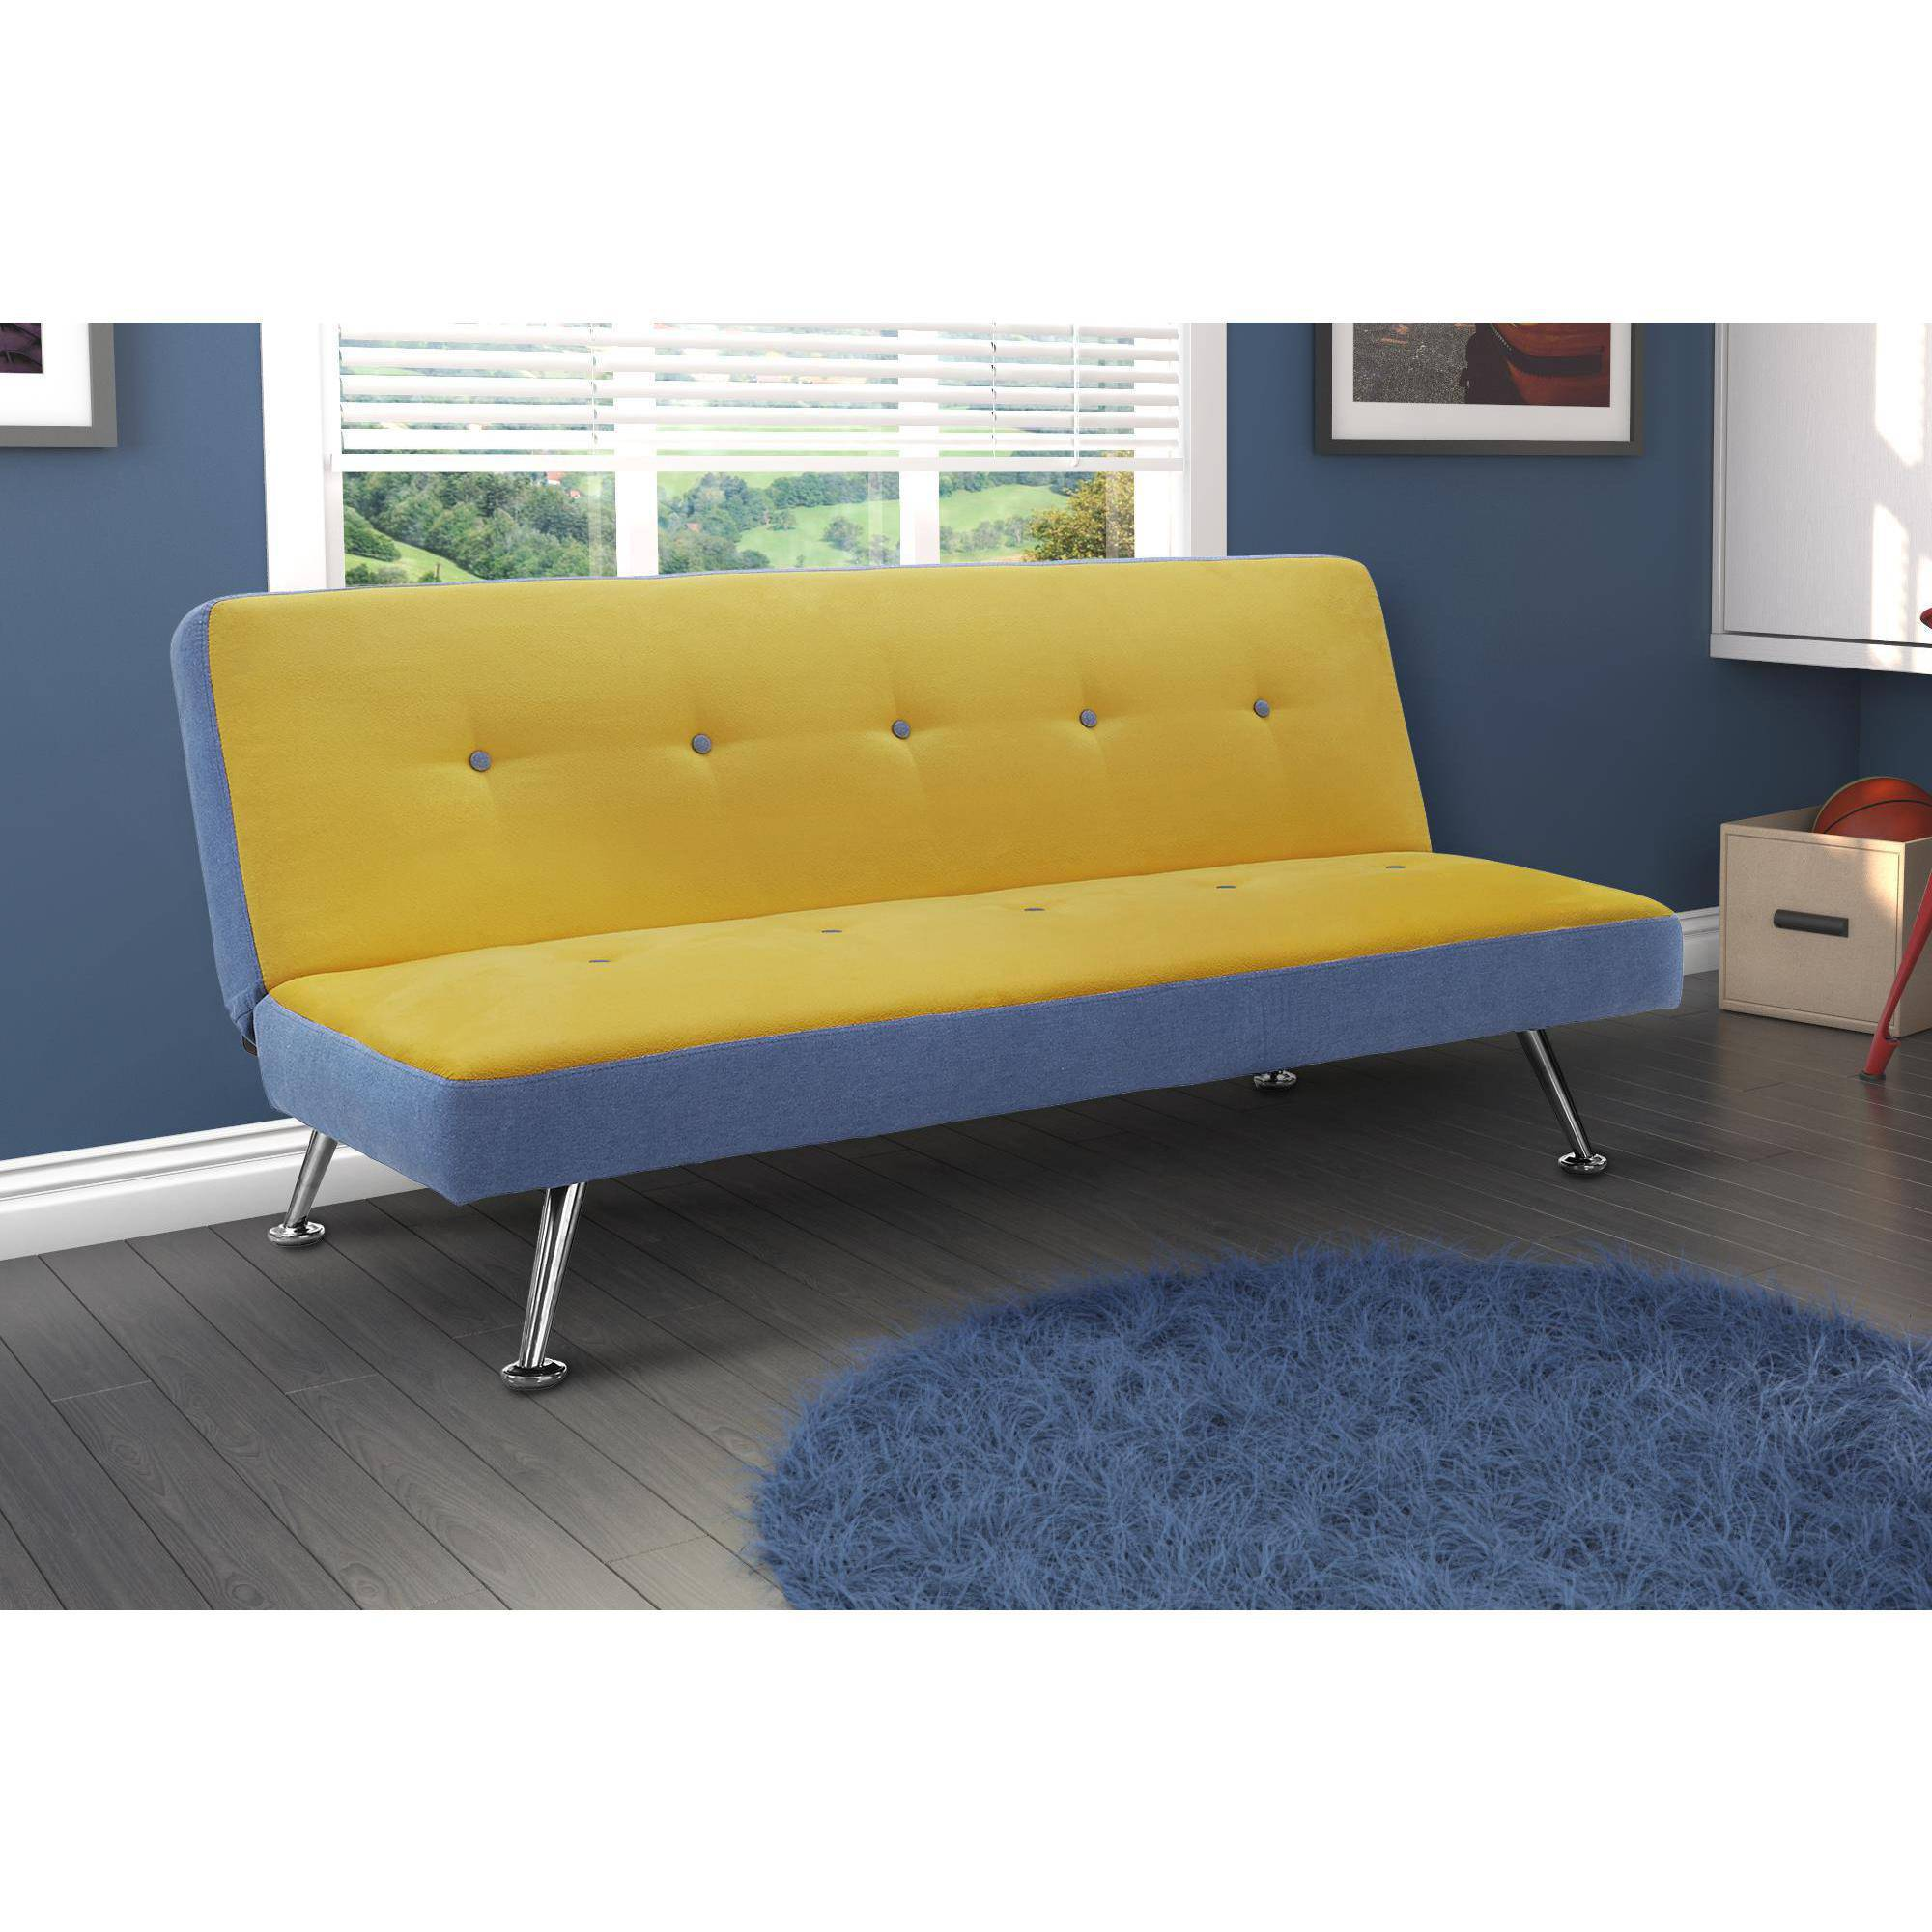 futons sleeper table pictures cobalt light blue sofas chaise jean saleblue sofa full dazzling for inspirations size with covers futon cheap denim of sectional cover